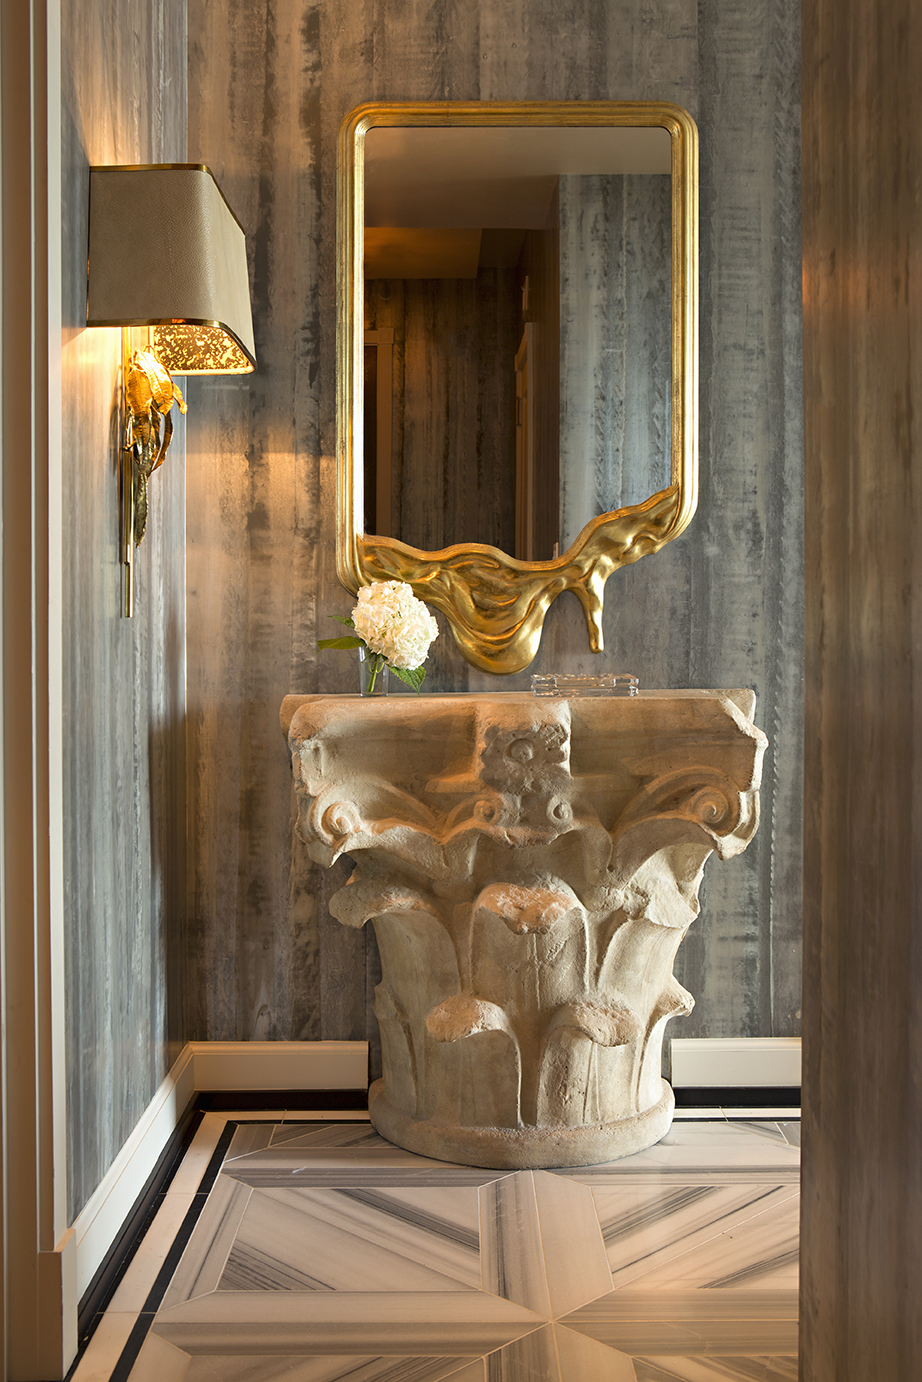 Interior design by Woodson and Rummerfields House of Design - Photography: Karyn Millet - High Point Market 2017 Style Spotters - Furniture trends 2017 - Luxury powder room designs - decorative gold mirrors - glamorous gold sconces